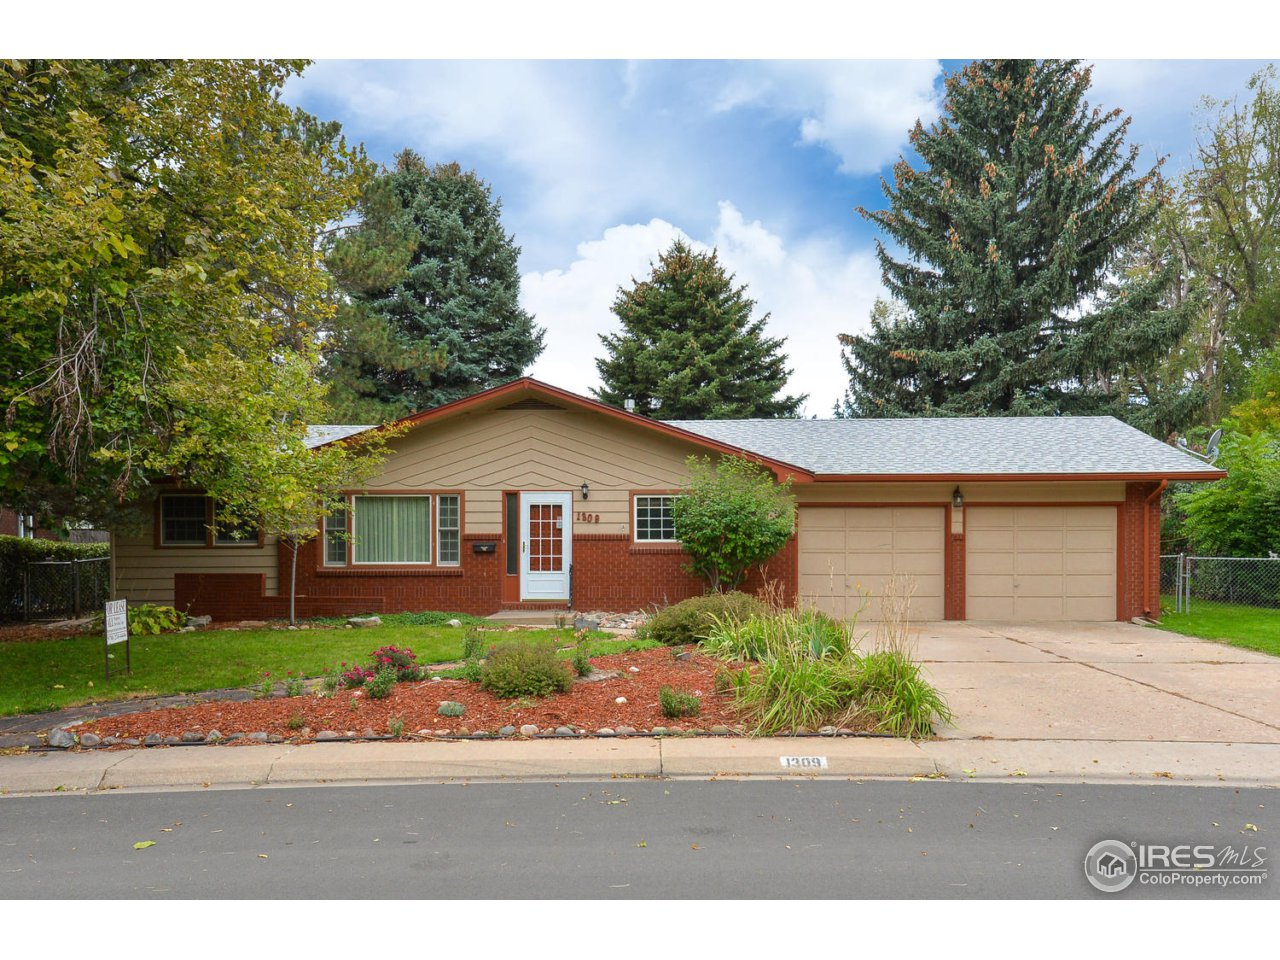 1309 Emigh St, Fort Collins CO 80524